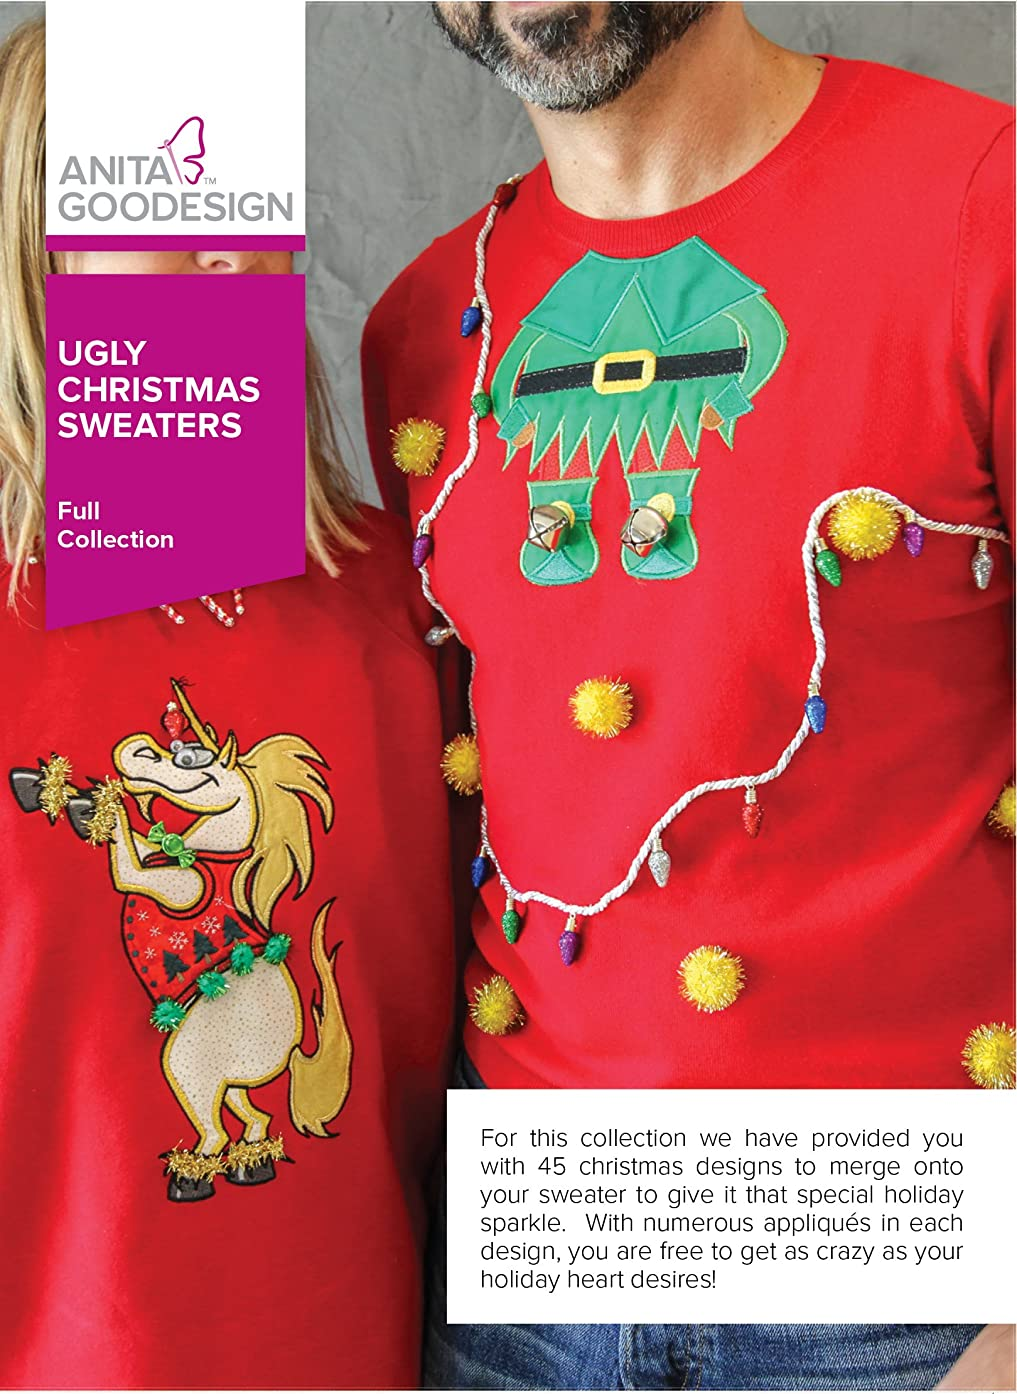 Anita Goodesign Embroidery Designs Ugly Christmas Sweaters